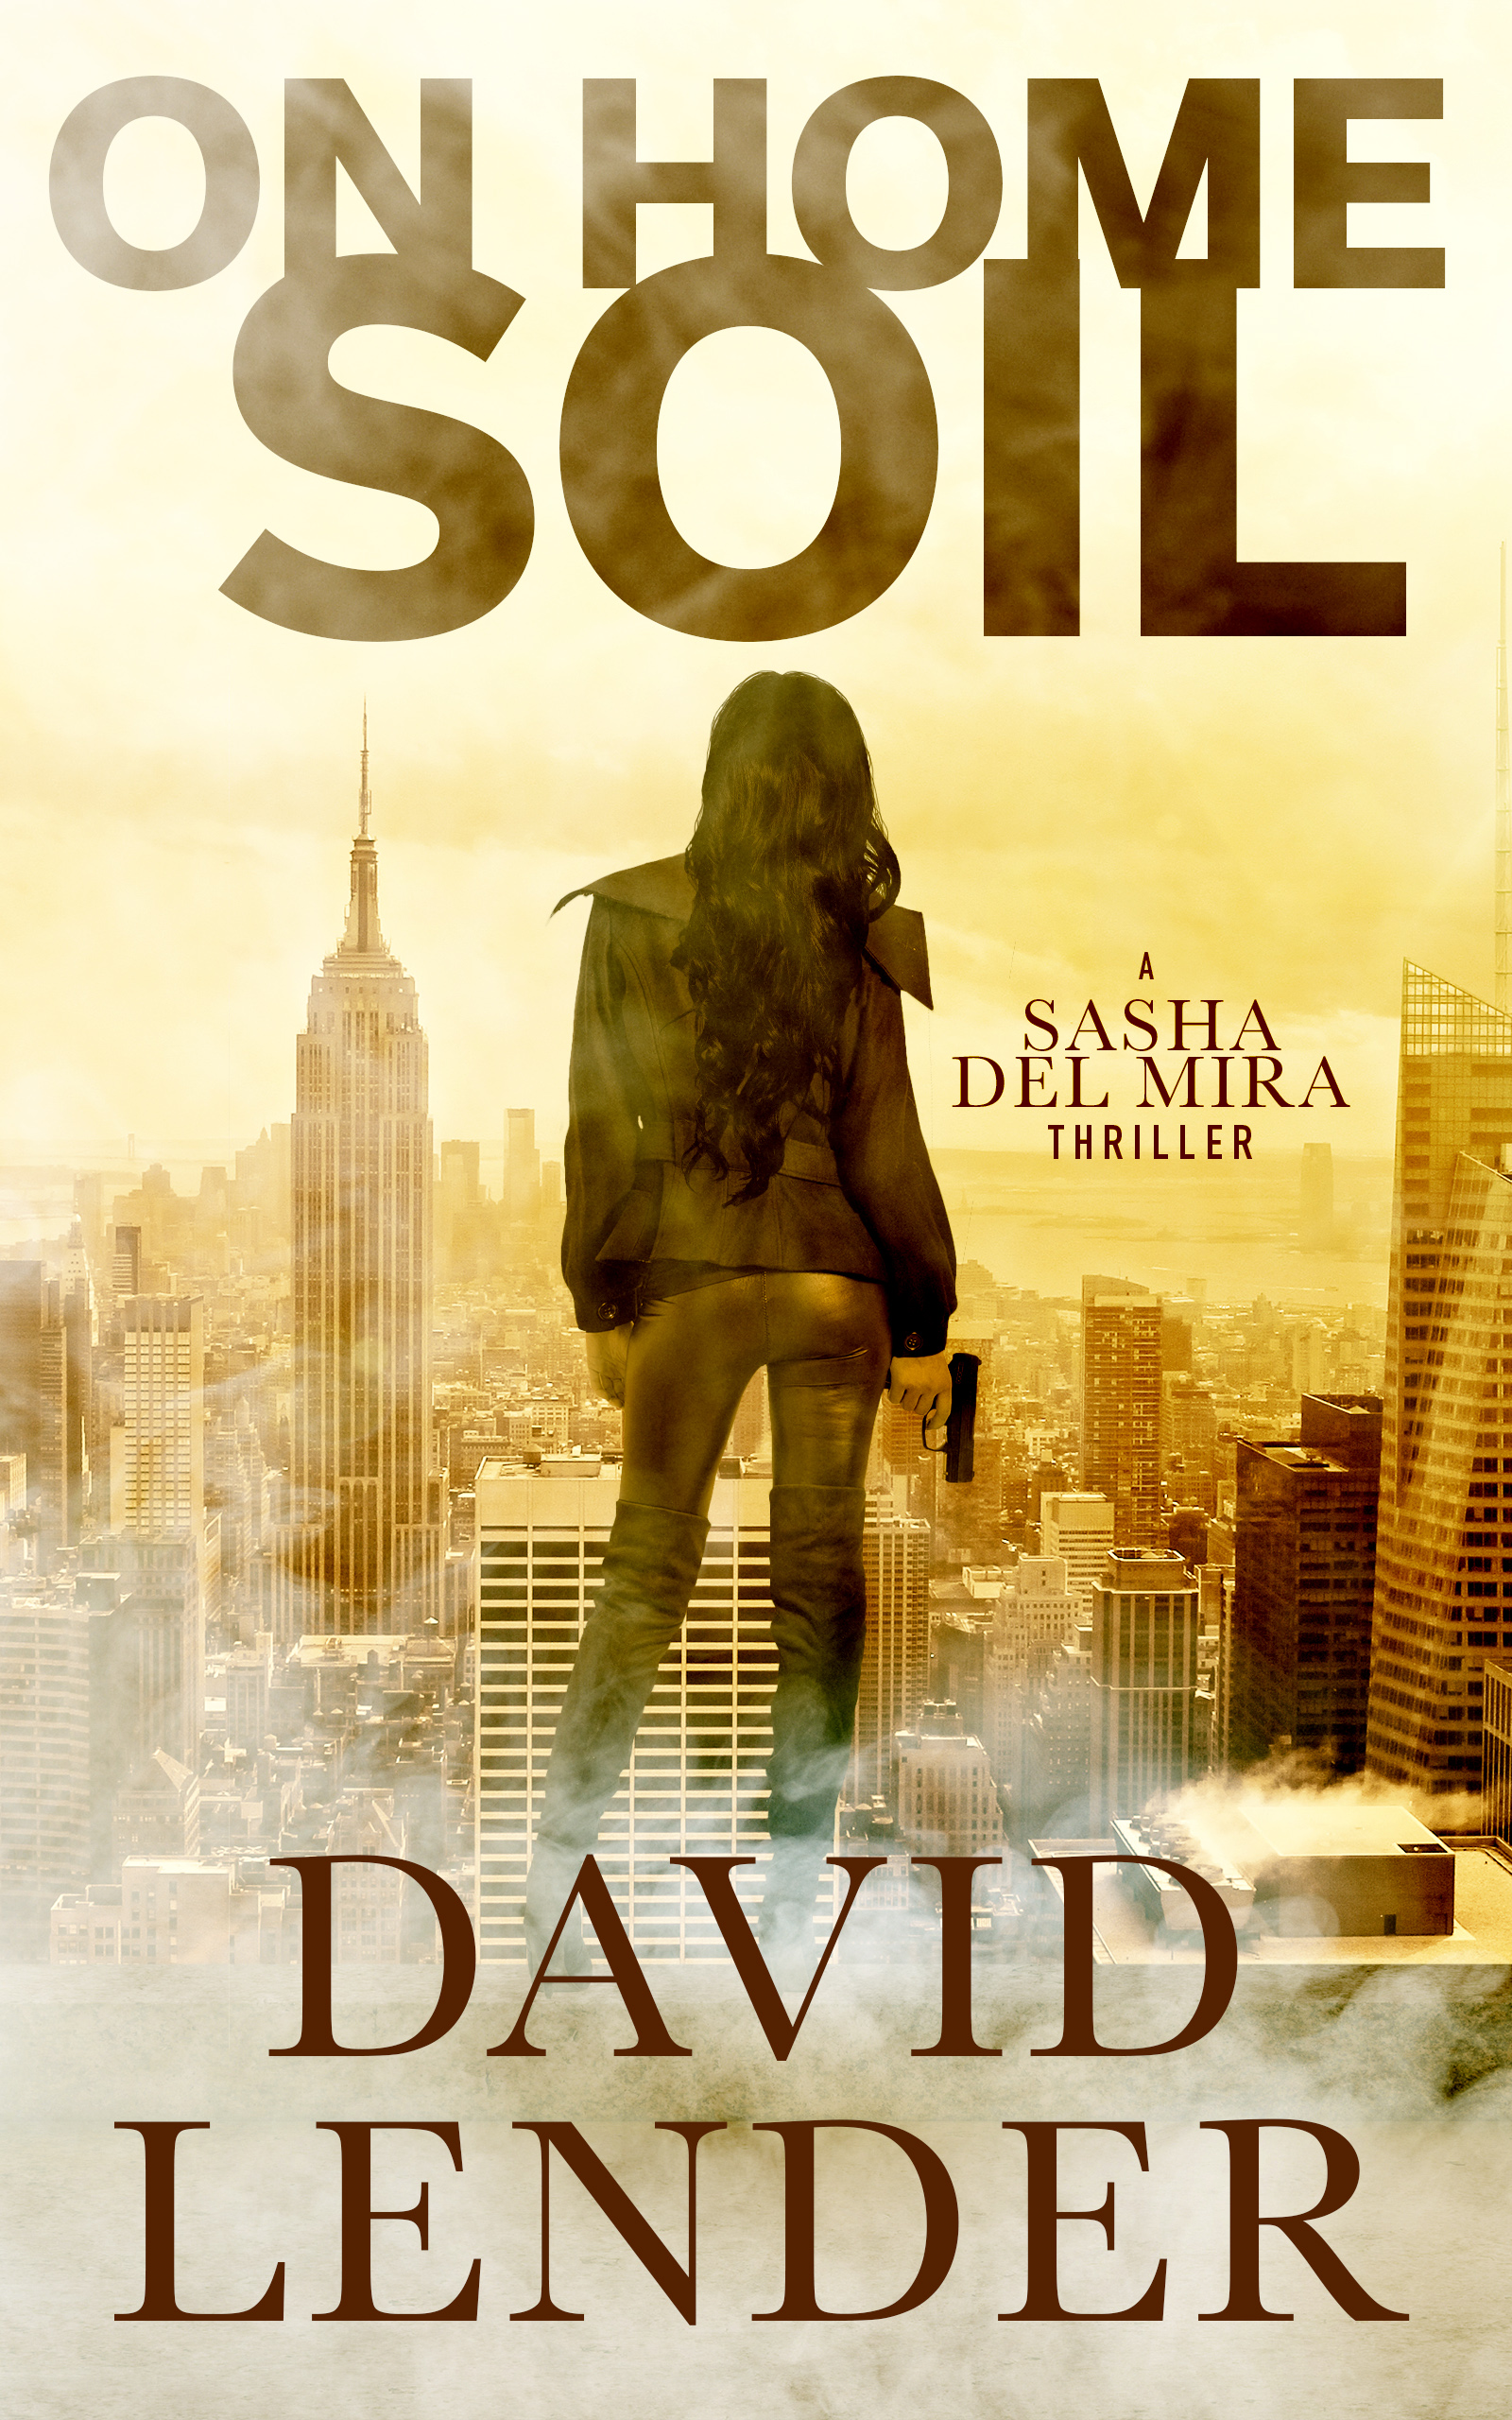 soil mira lender david sasha cover author amazon covers del books thriller authors thrillers edition professional bestselling flip others follow